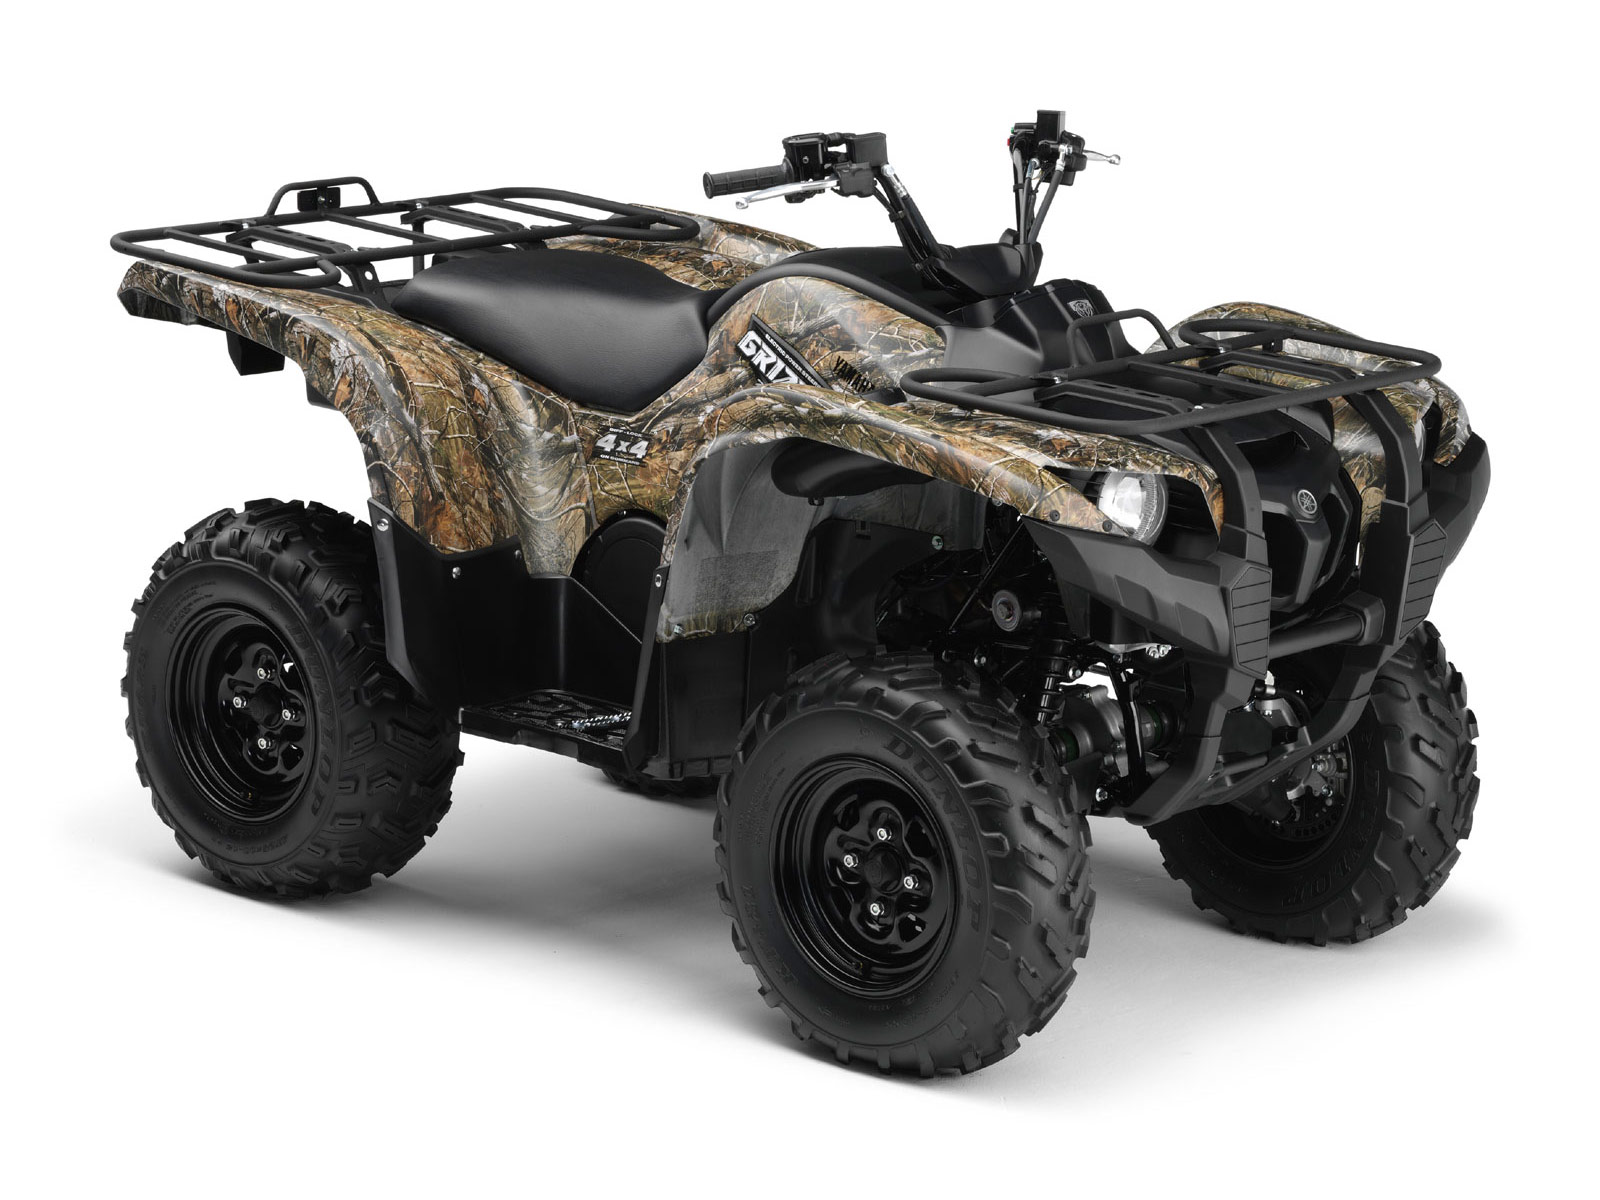 Yamaha Grizzly Owner Review